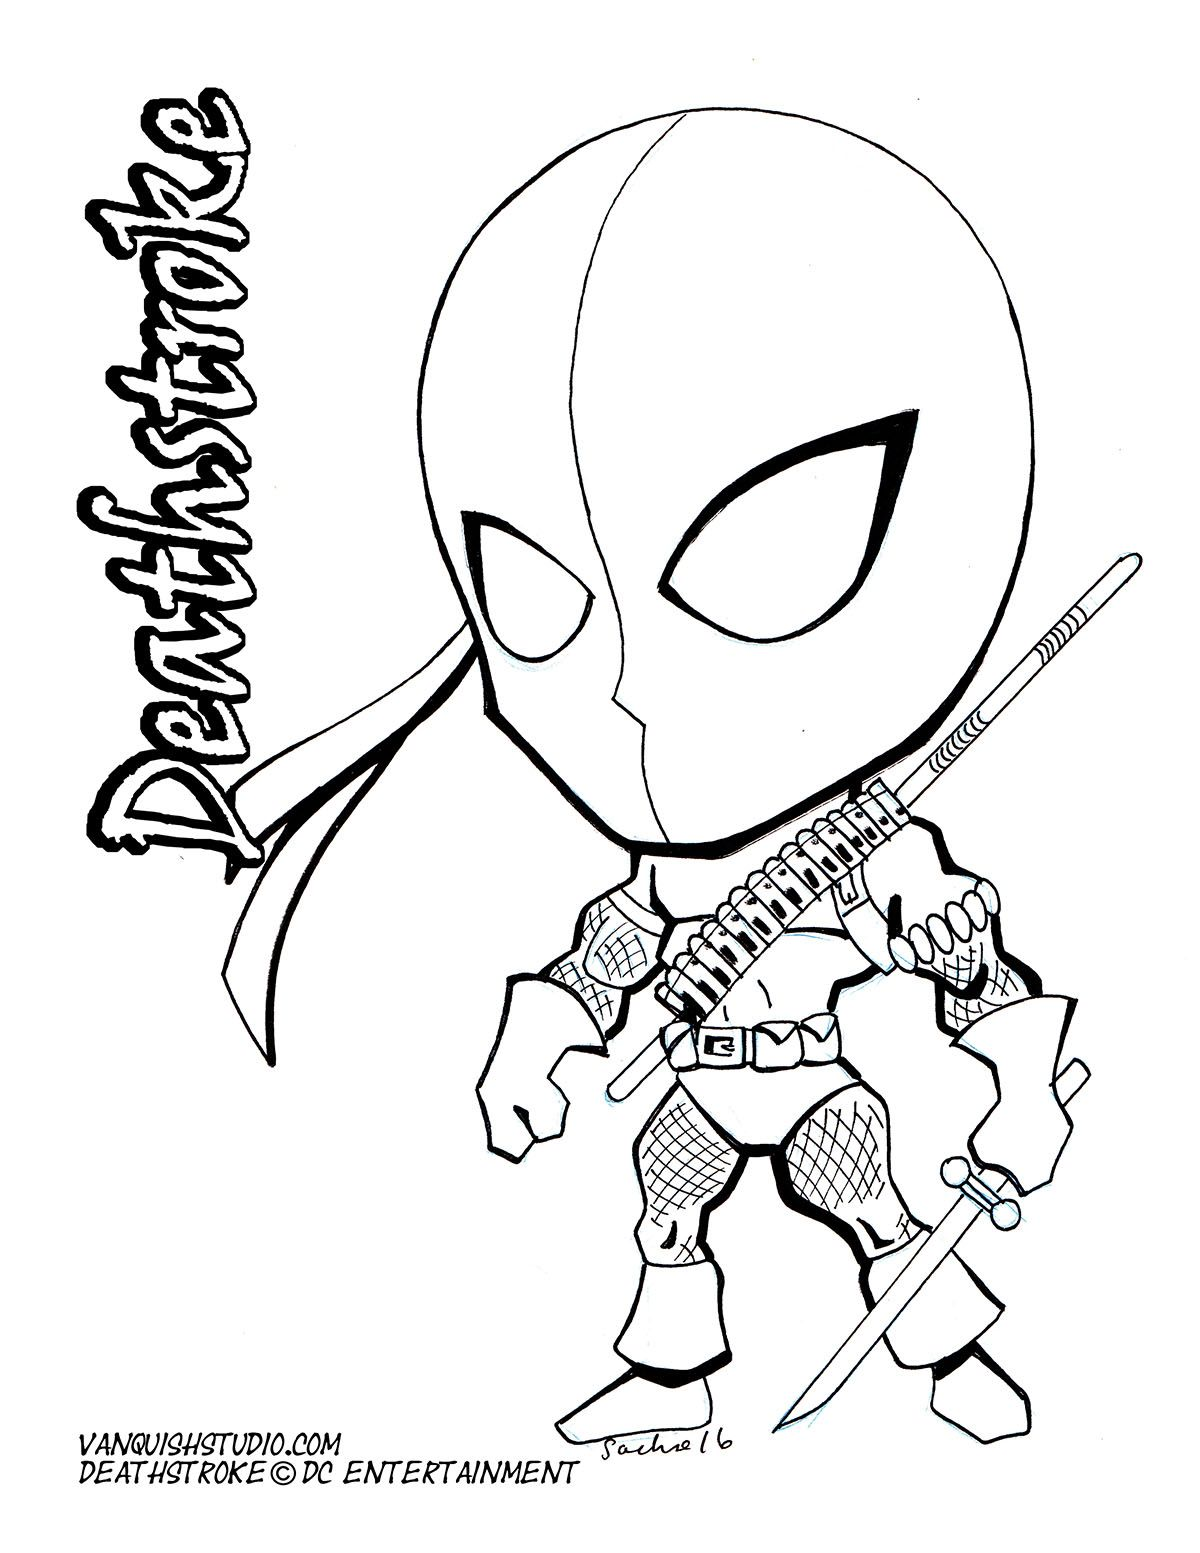 Chibi Style Fusion Of American And Japanese Art Deathstroke